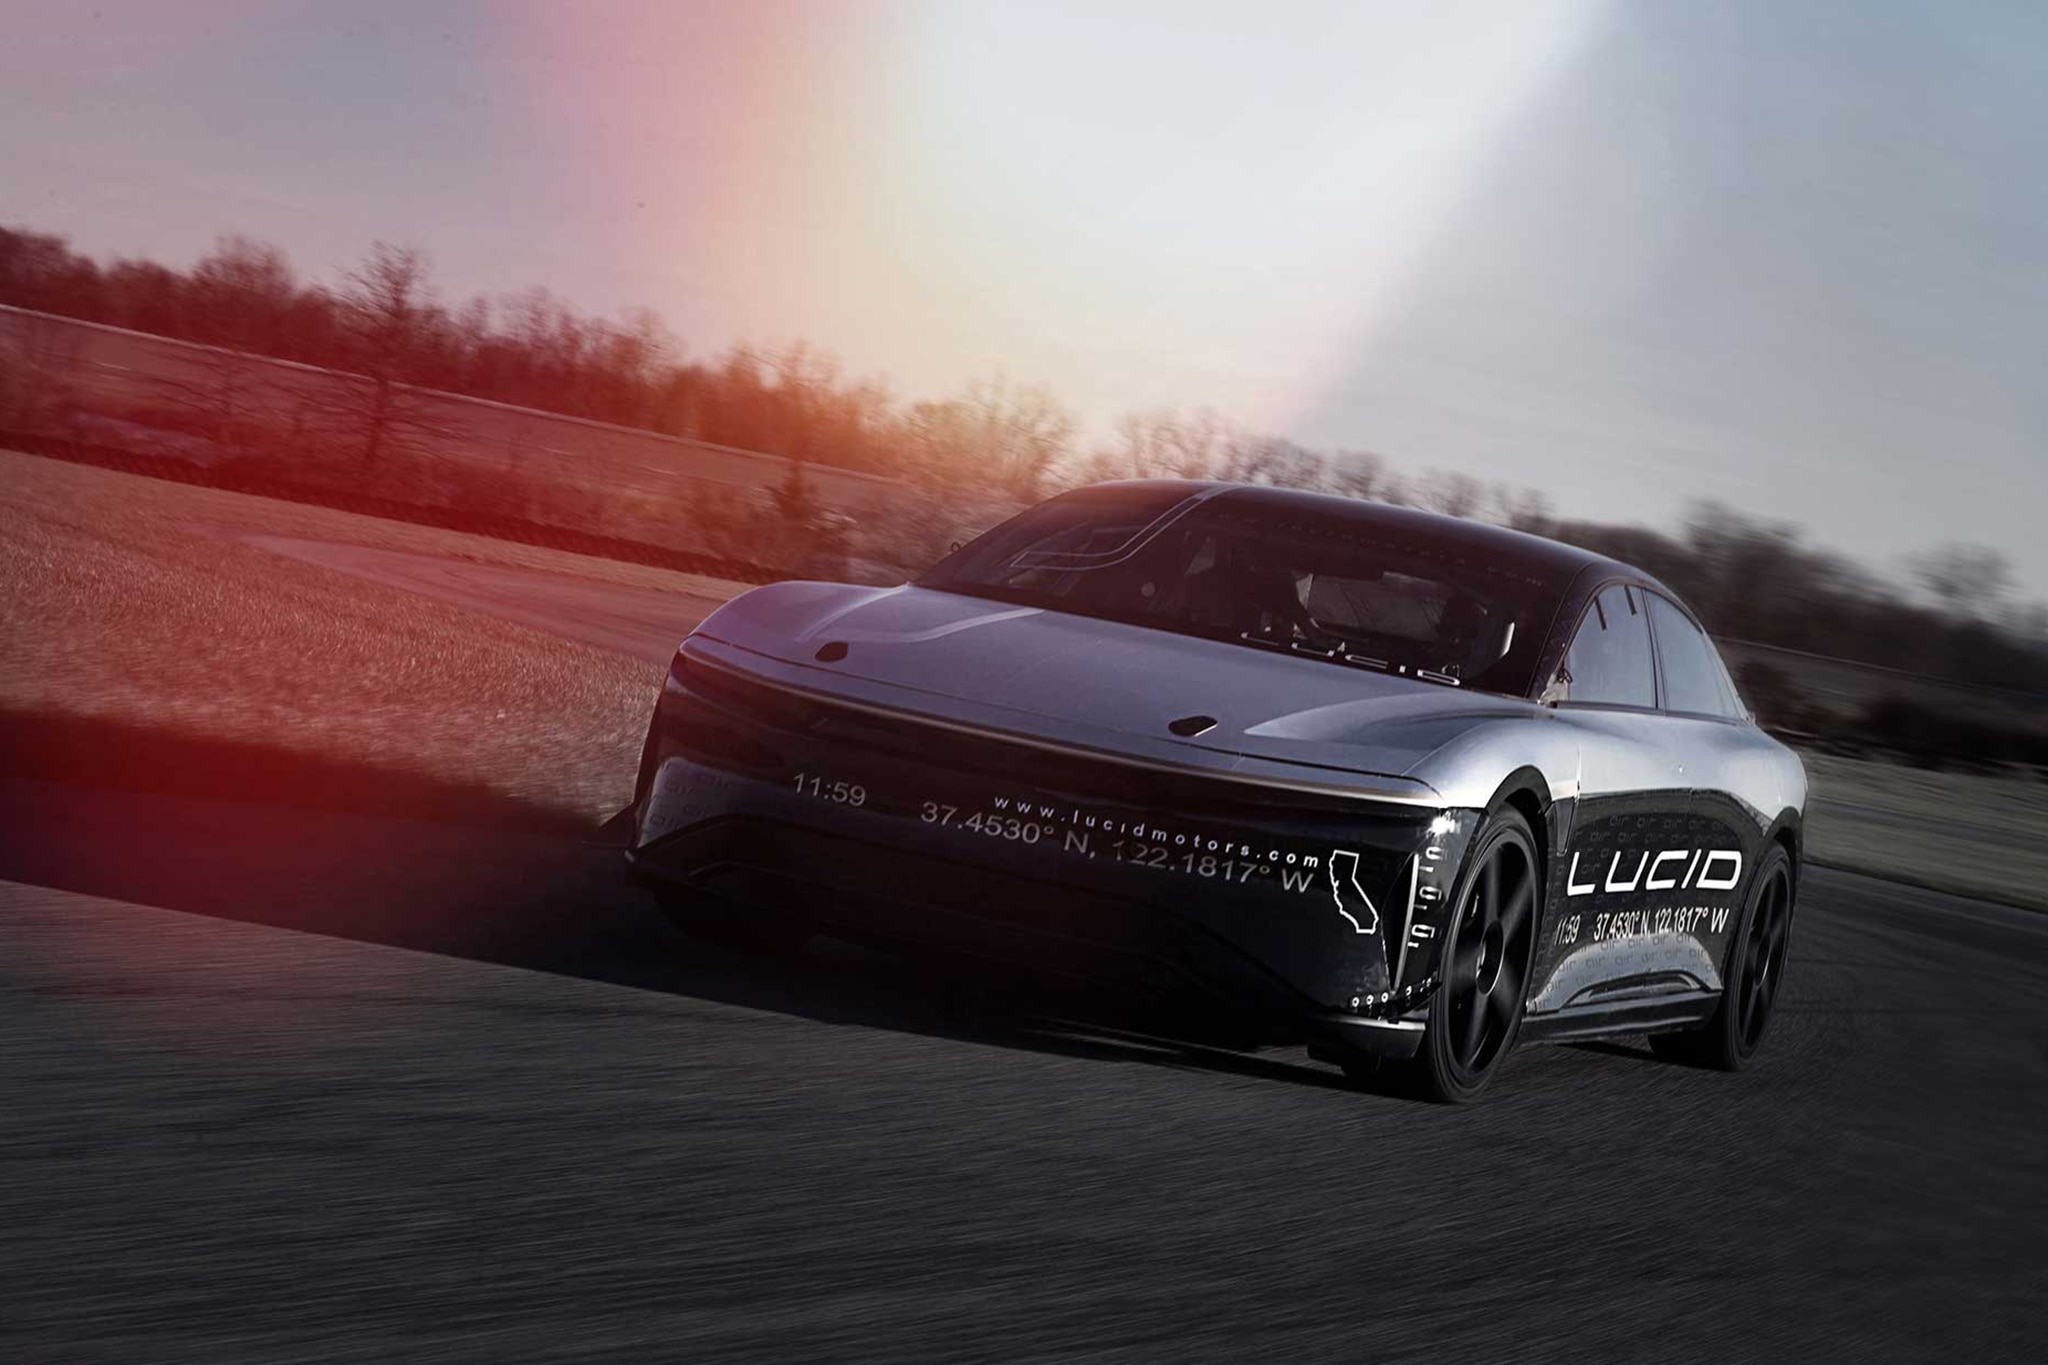 Lucid Alpha Speed Car In Motion